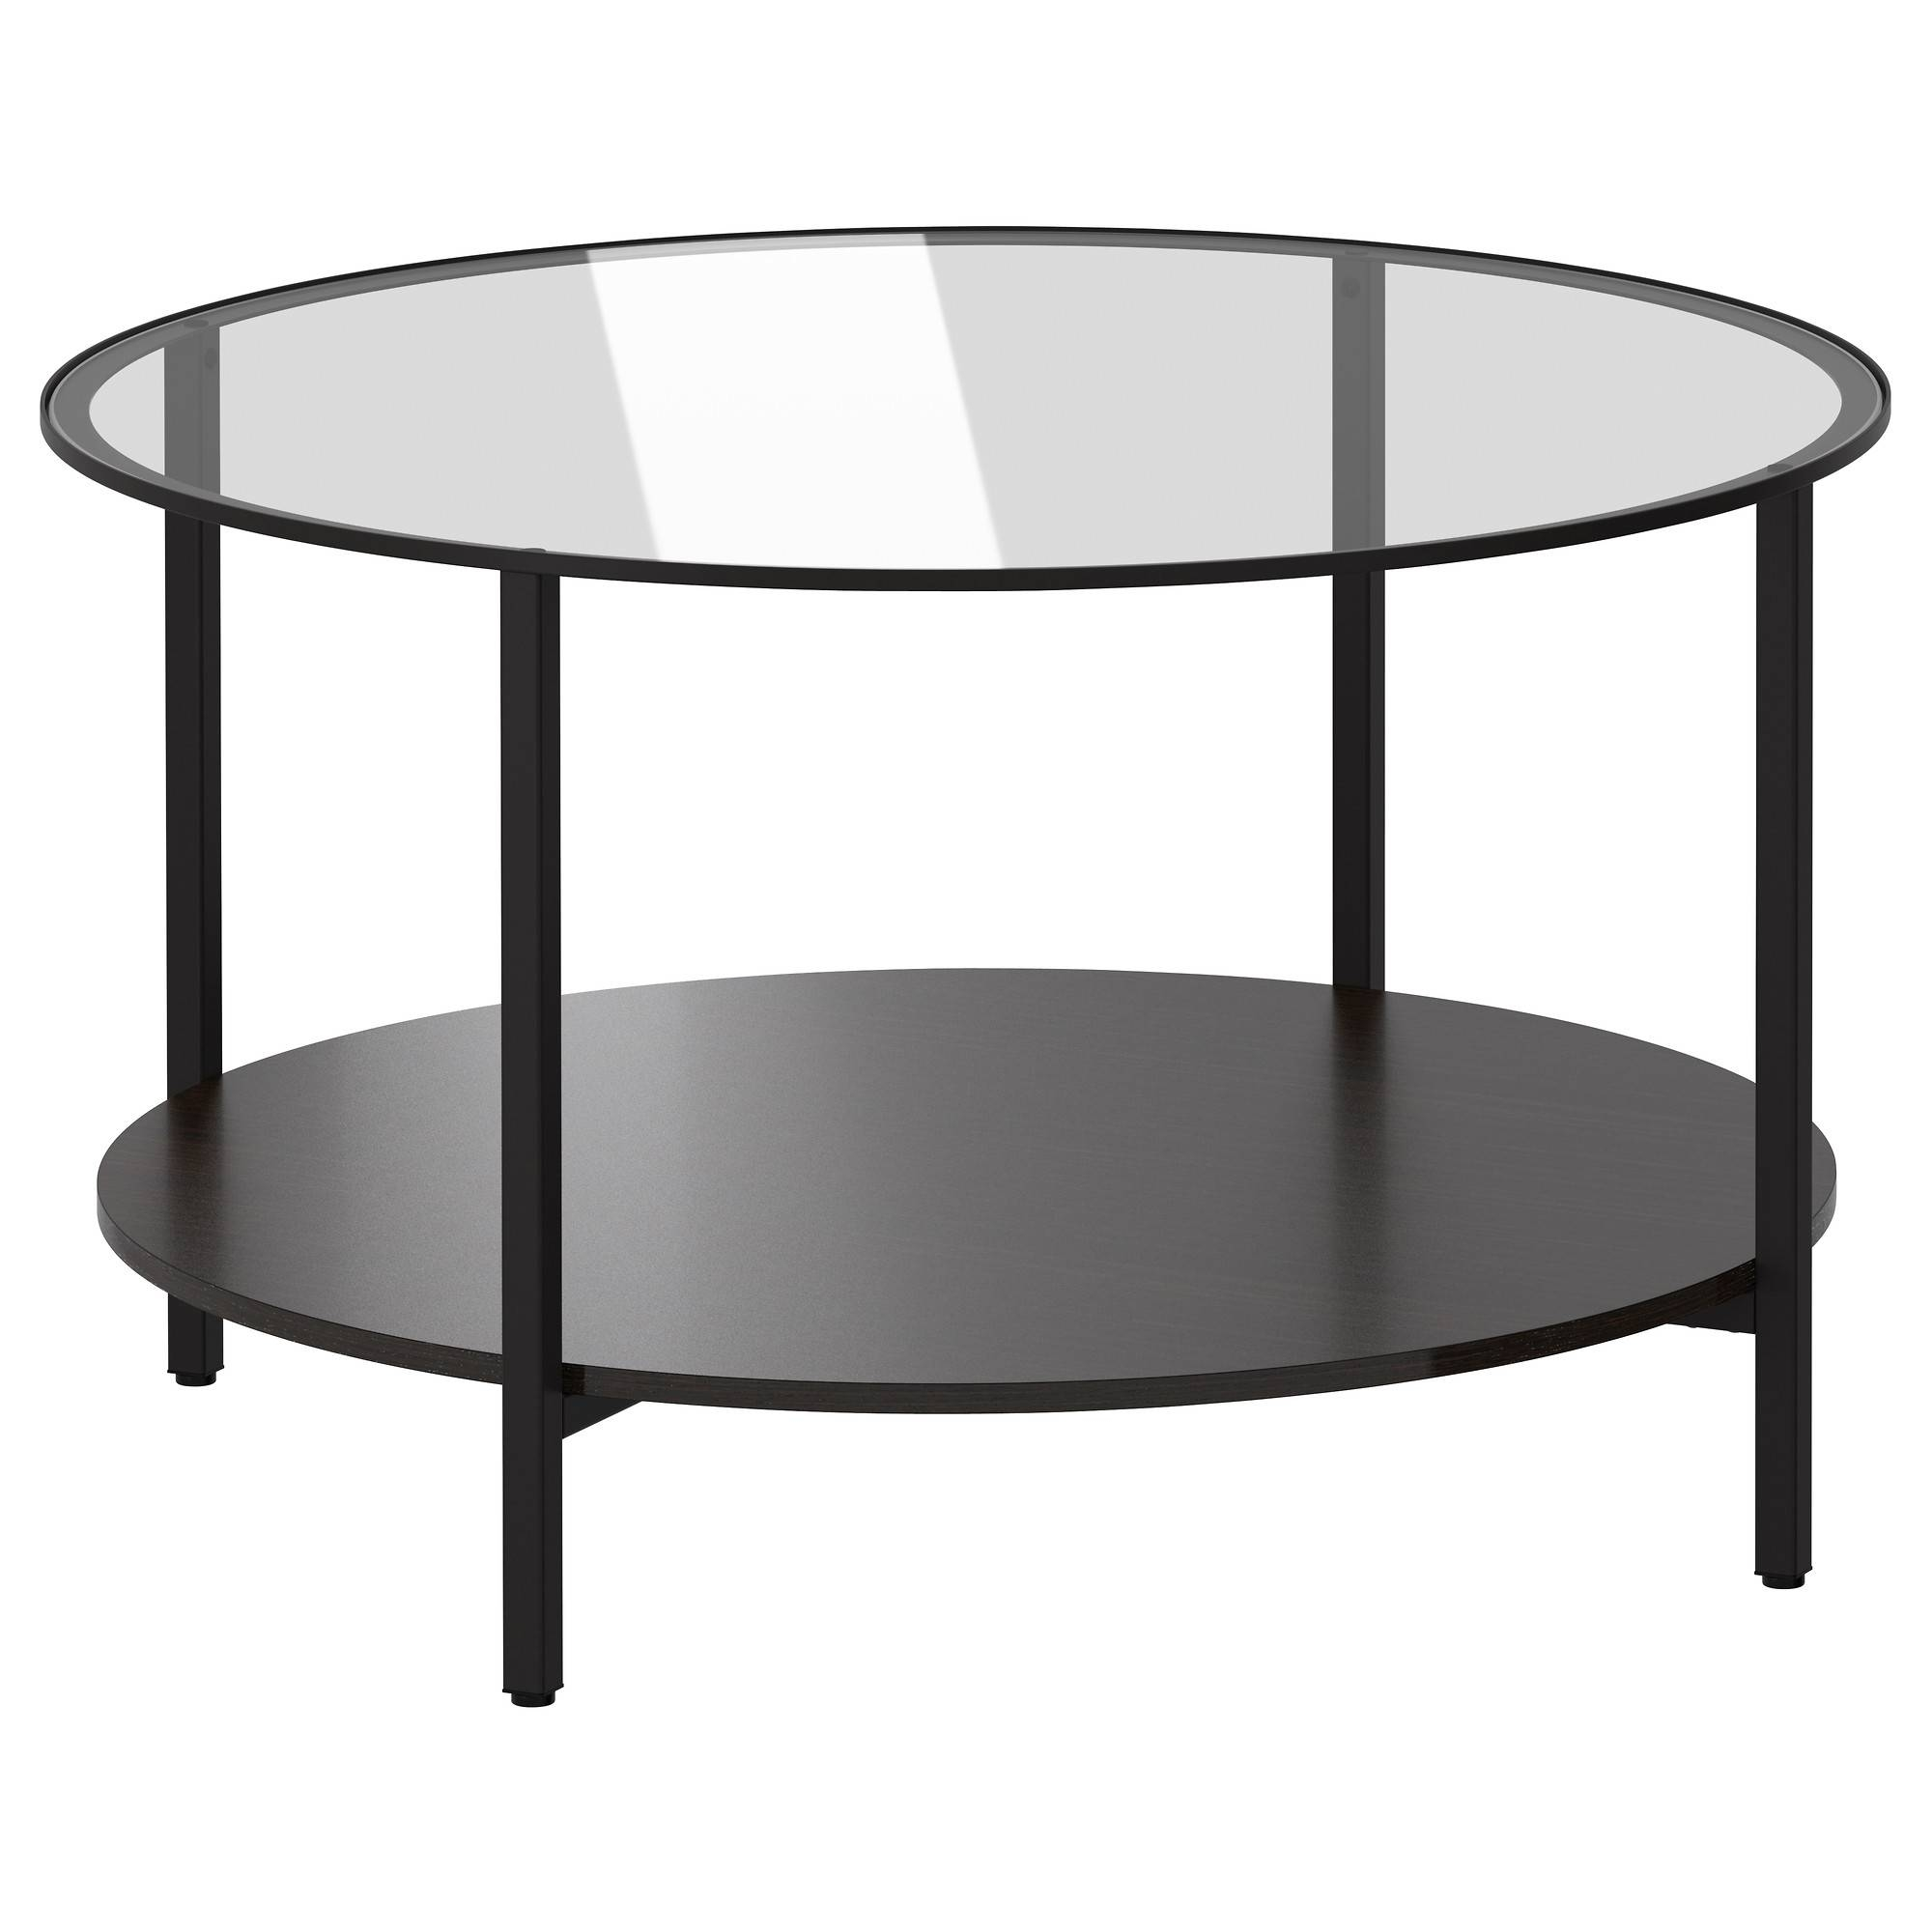 Coffee Table: Amazing Circle Coffee Table Ideas Round Coffee with regard to Dark Glass Coffee Tables (Image 15 of 30)